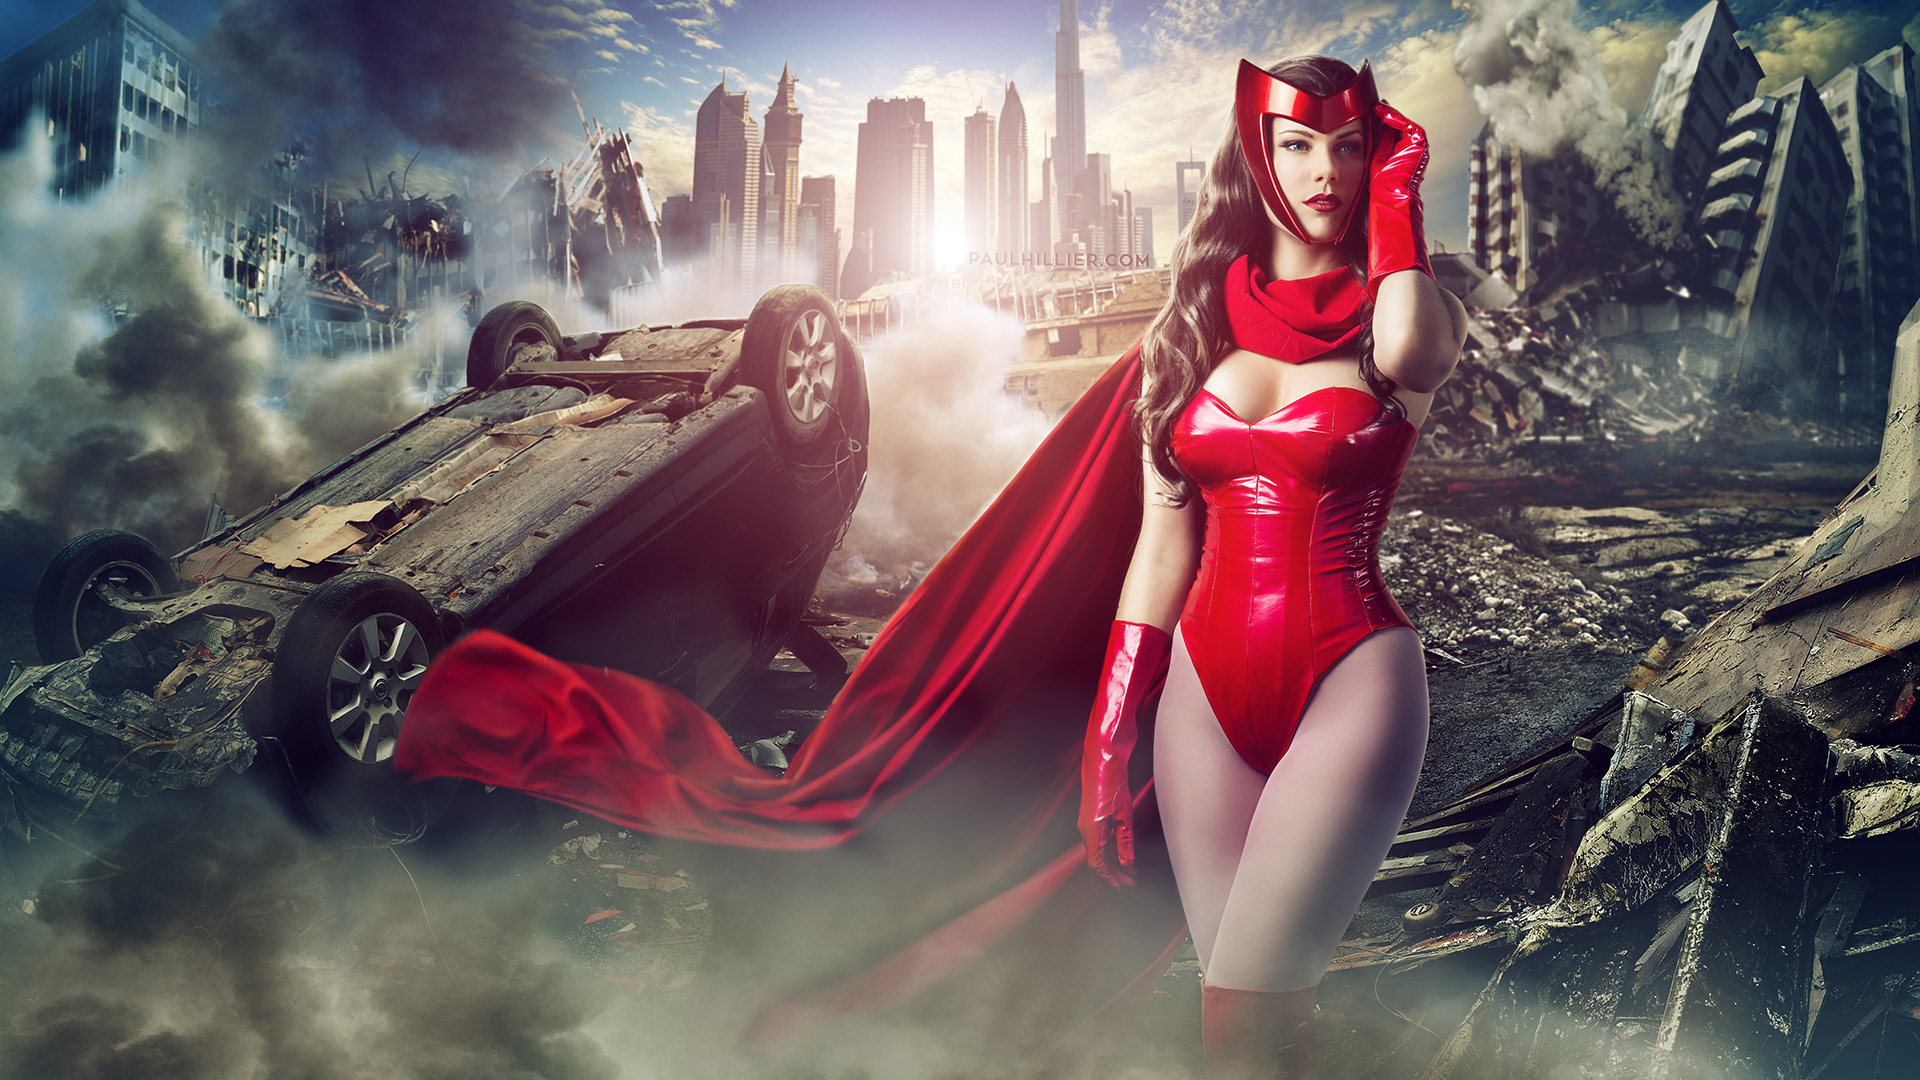 Free Download Scarlet Witch By Roadragebunny 1920x1080 For Your